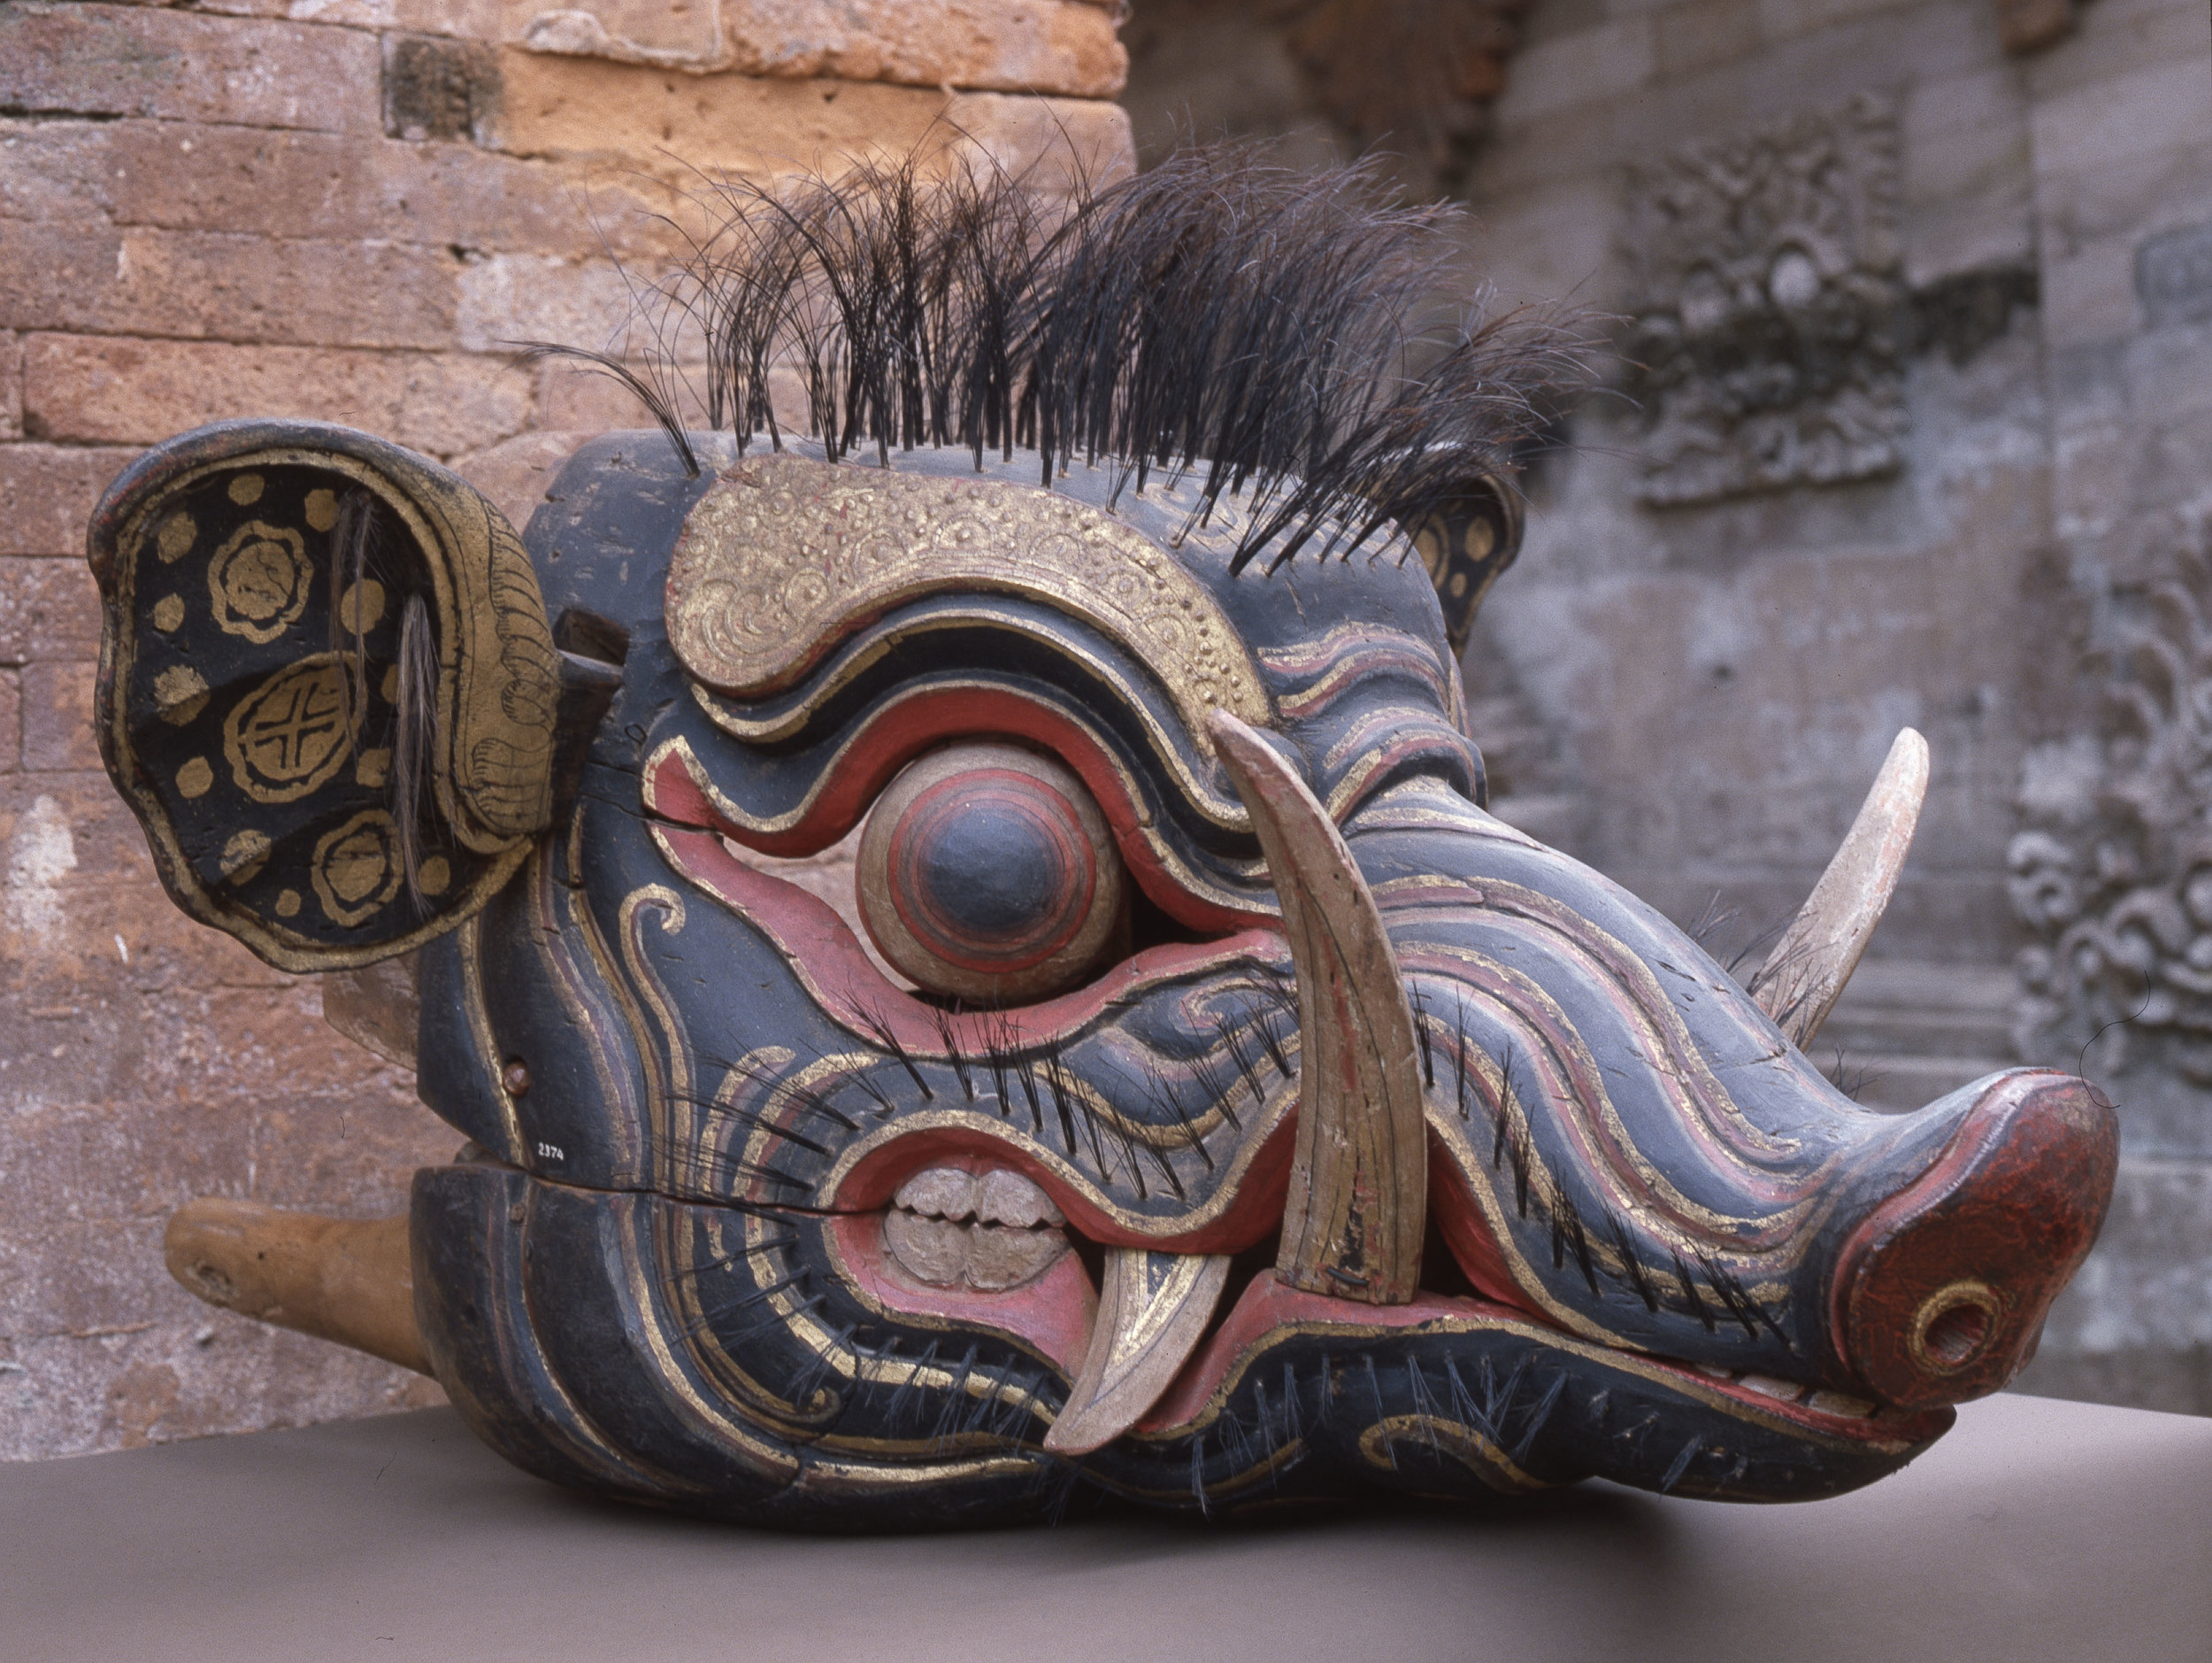 Barong Bangkung, a boar's head variant of the Barong dance mask. Country of Origin: Indonesia. Culture: Balinese. Date/Period: 1982 Place of Origin: Bali. Material Size: Wood, paint, fabric, metal. Credit Line: Werner Forman Archive.